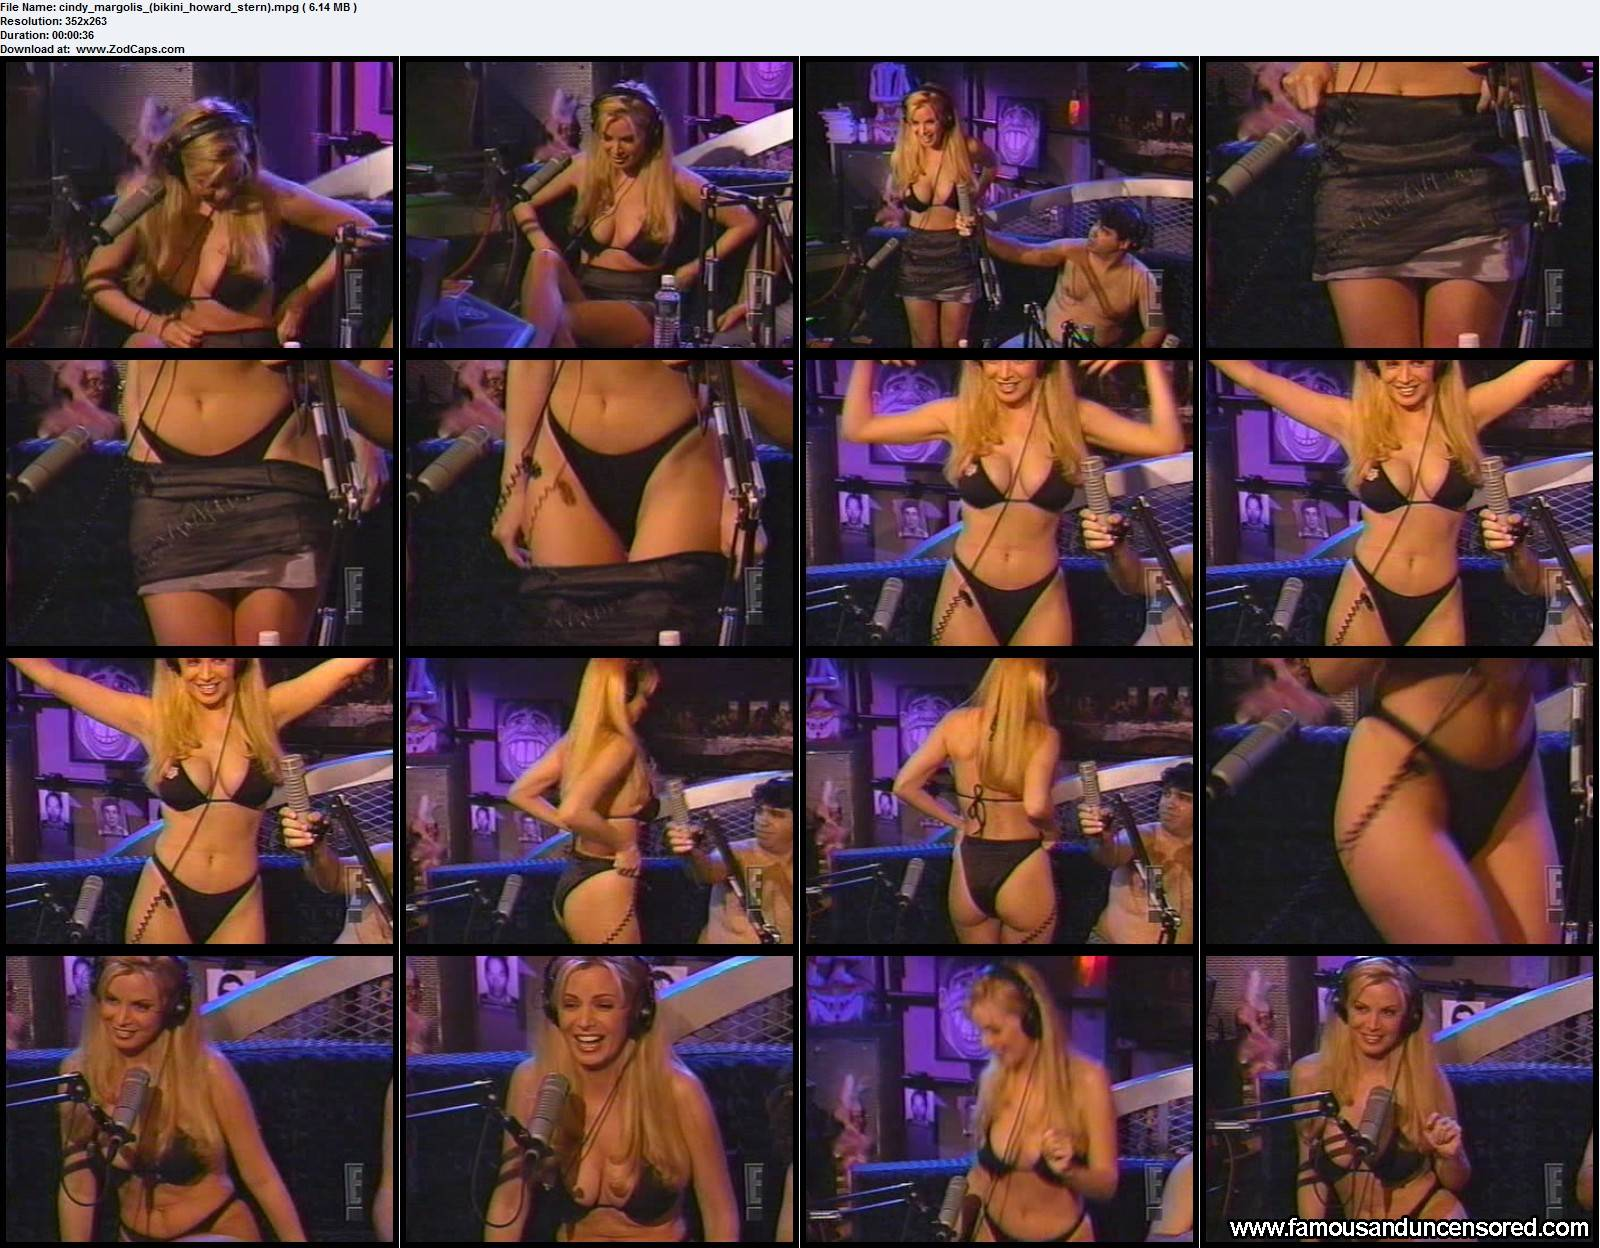 howard stern and nude girl